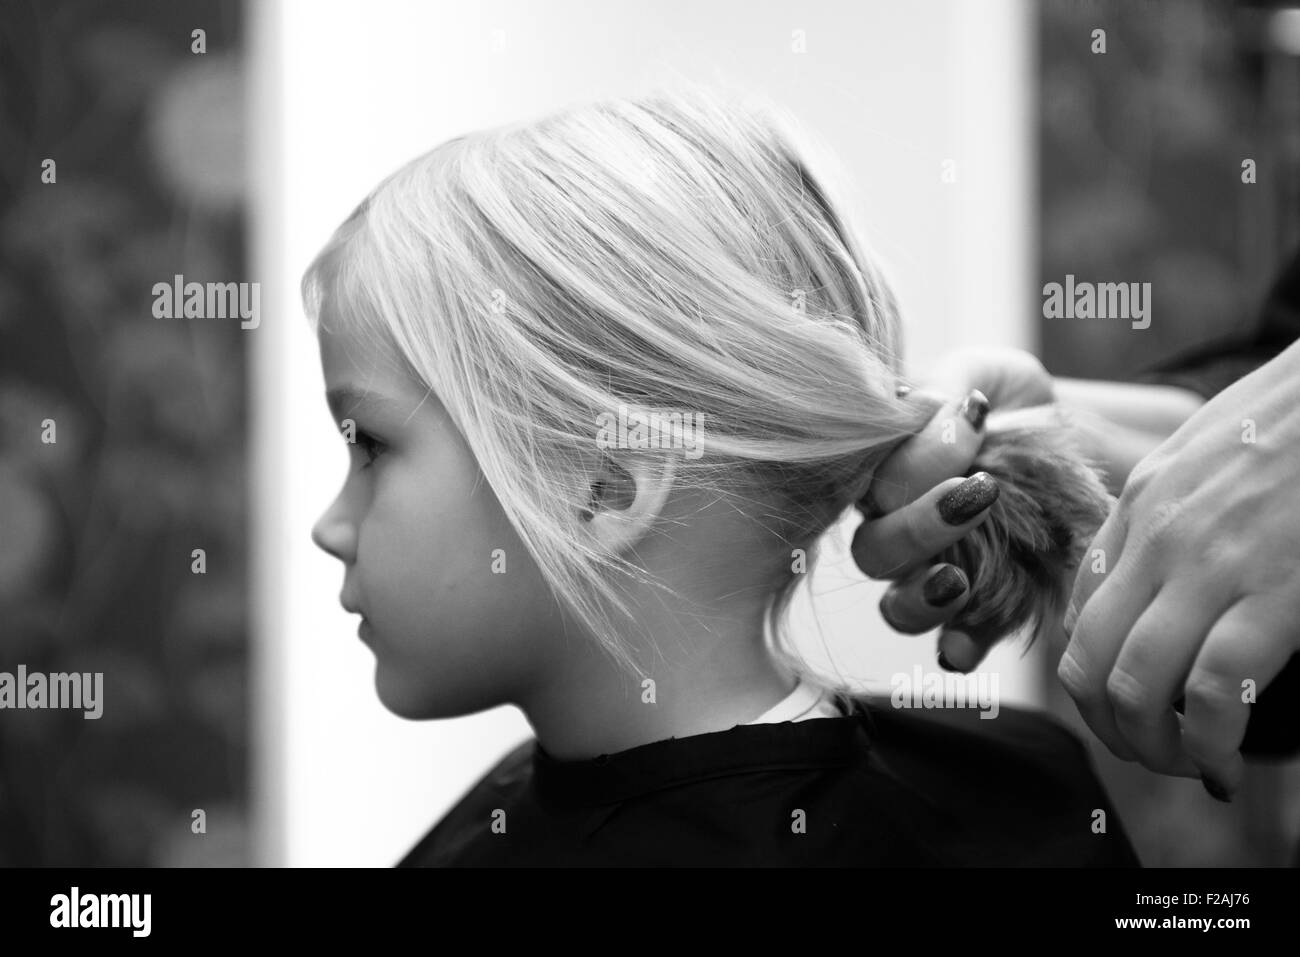 Female hairdresser cutting and brushing young child blond girl hair in hairdressing salon - Stock Image